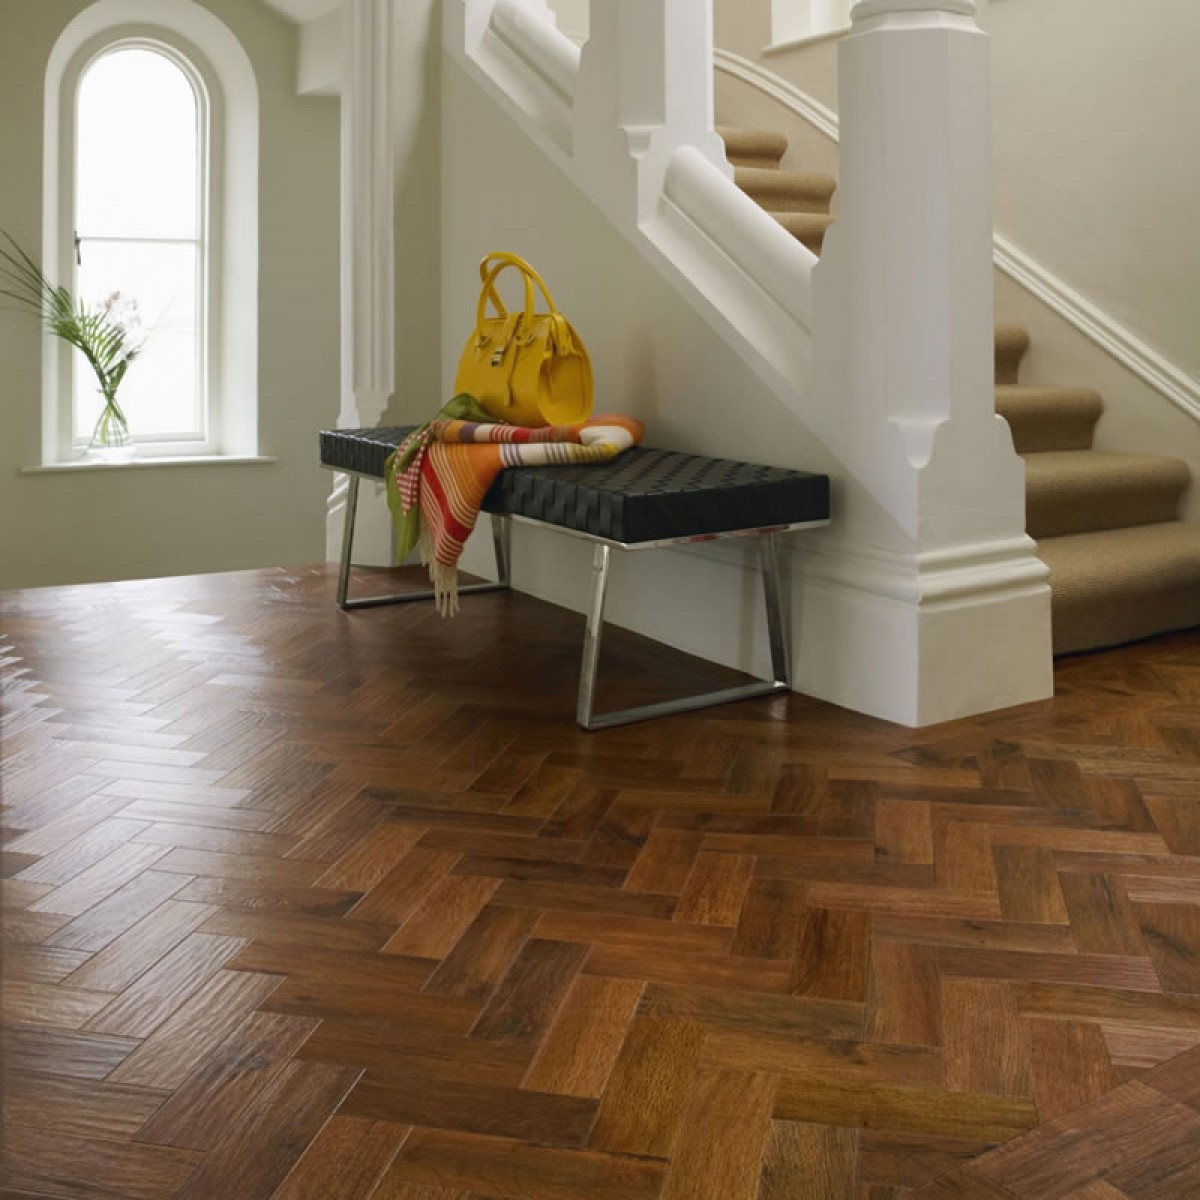 karndean art select ap02 auburn oak parquet vinyl flooring karndean vinyl flooring the floor hut. Black Bedroom Furniture Sets. Home Design Ideas